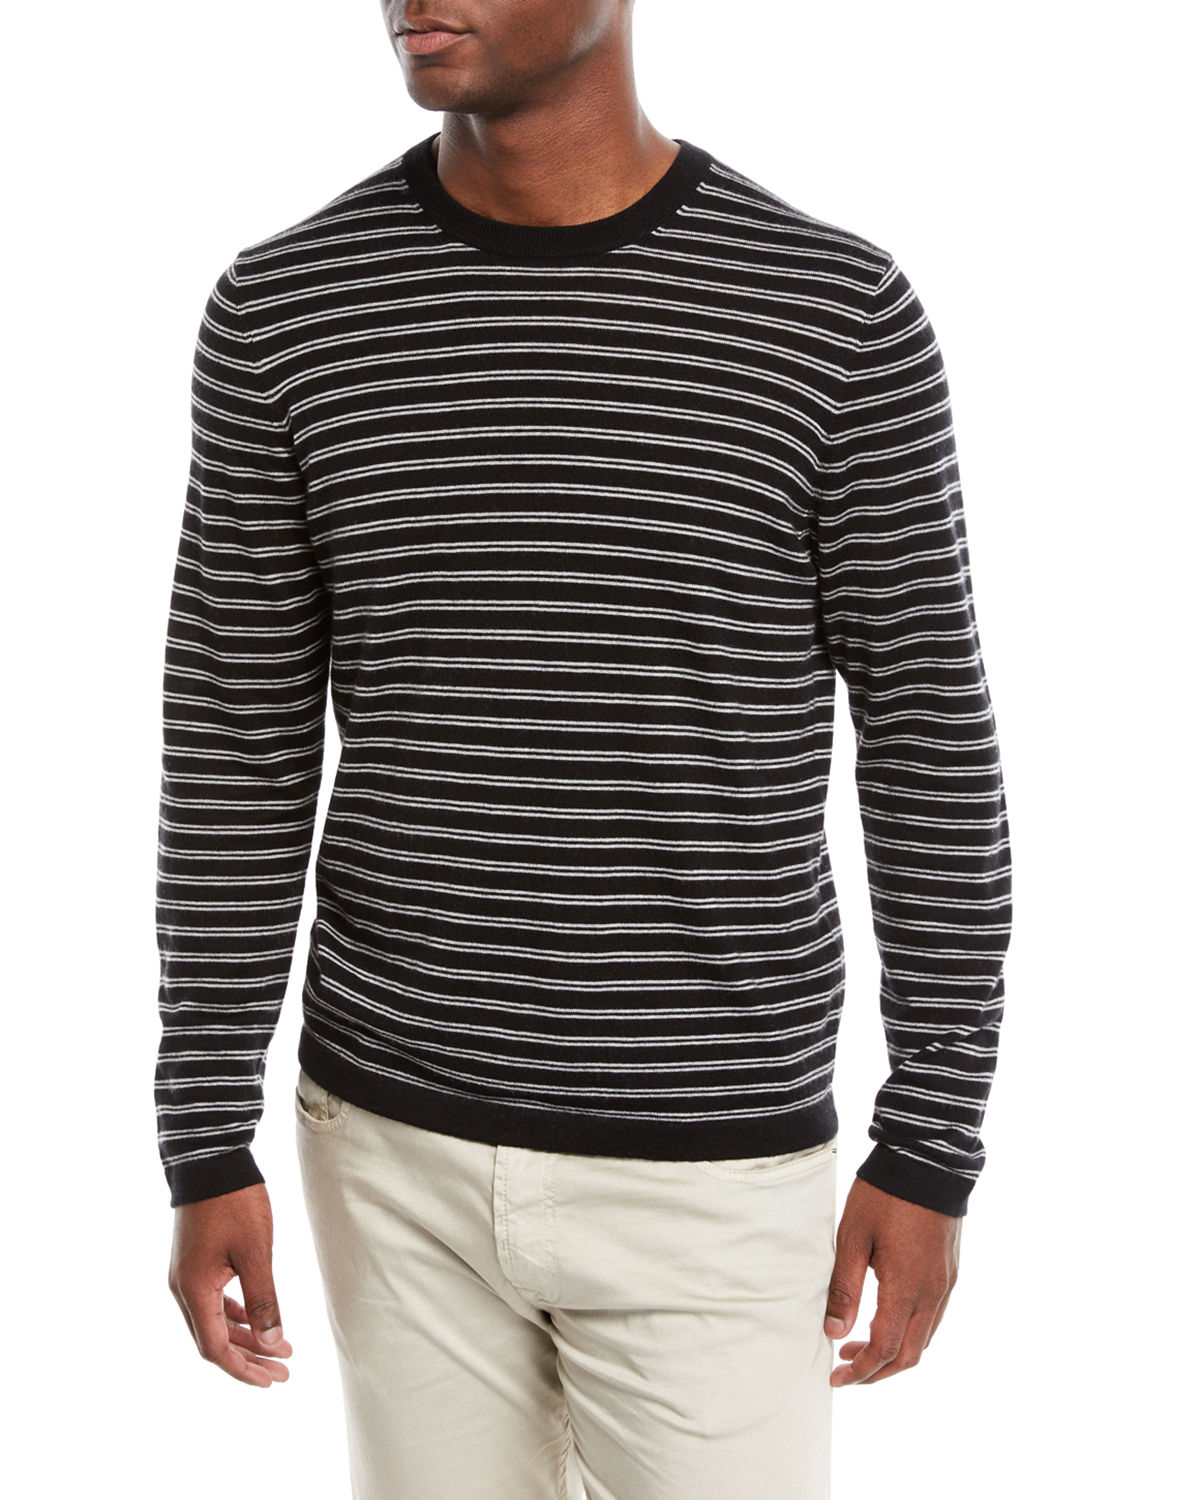 7ab8f91c844 Neiman Marcus Men's Cashmere-Silk Striped Long-Sleeve T-Shirt ...